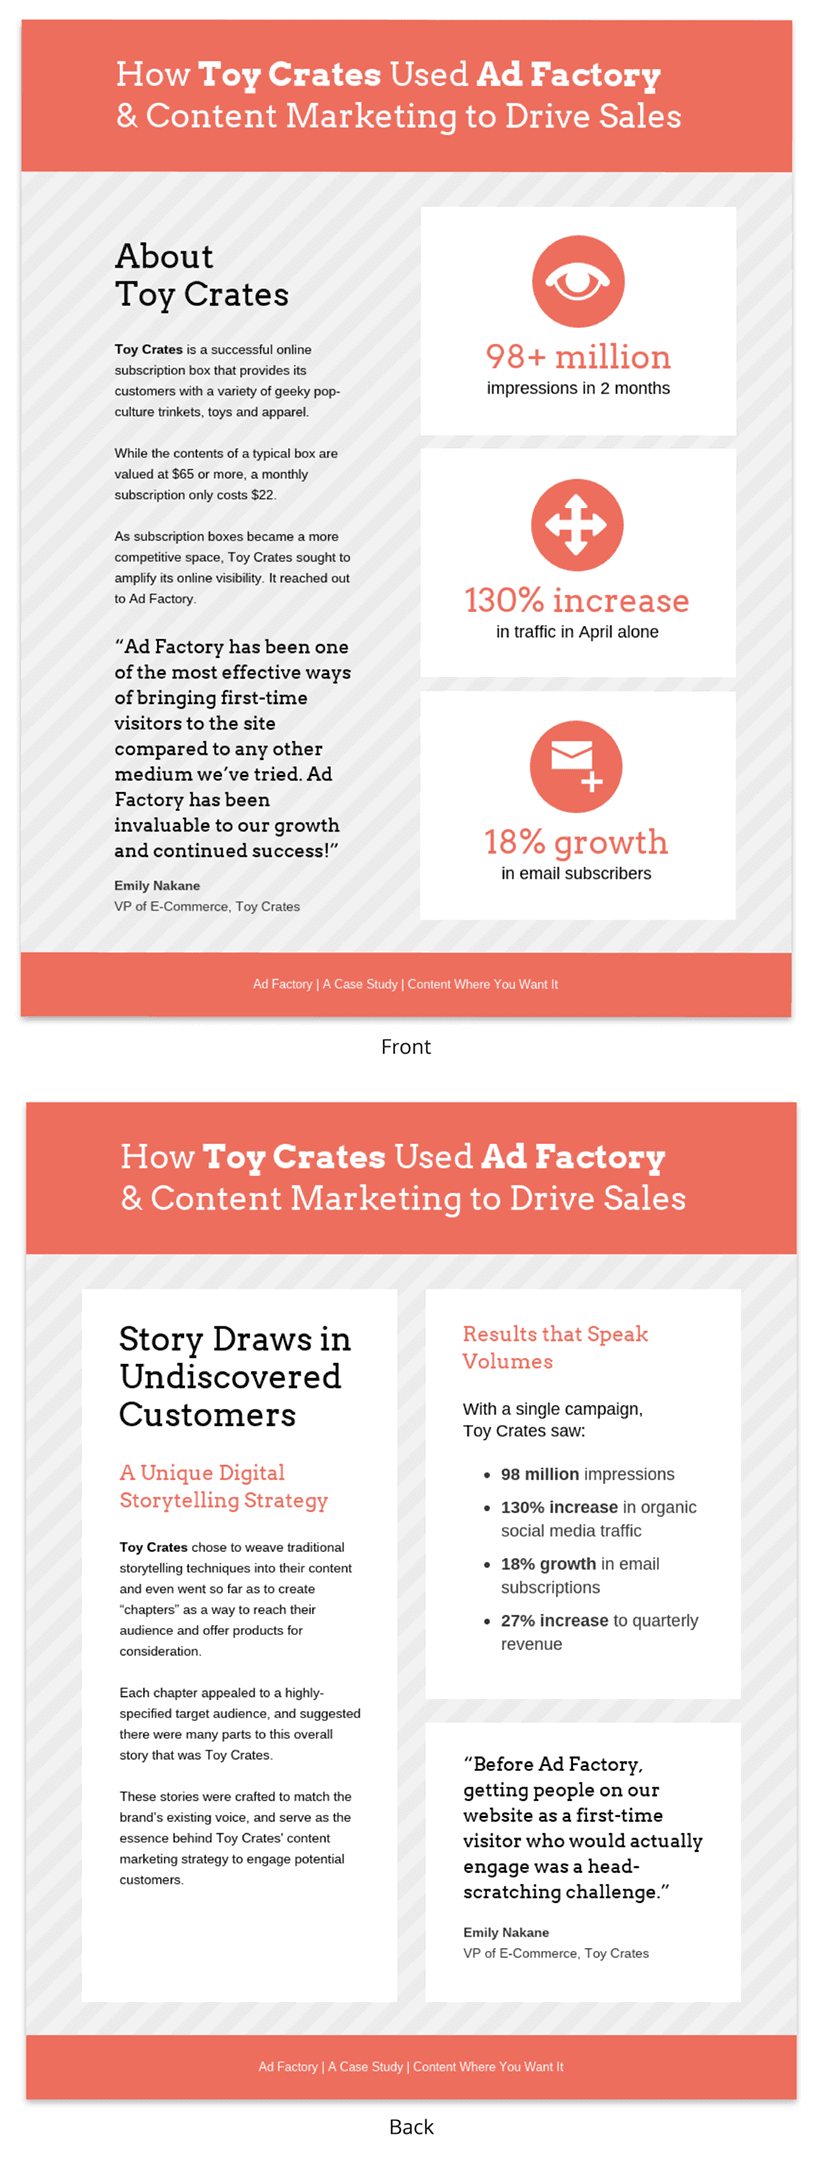 Coral Content Marketing Case Study Template